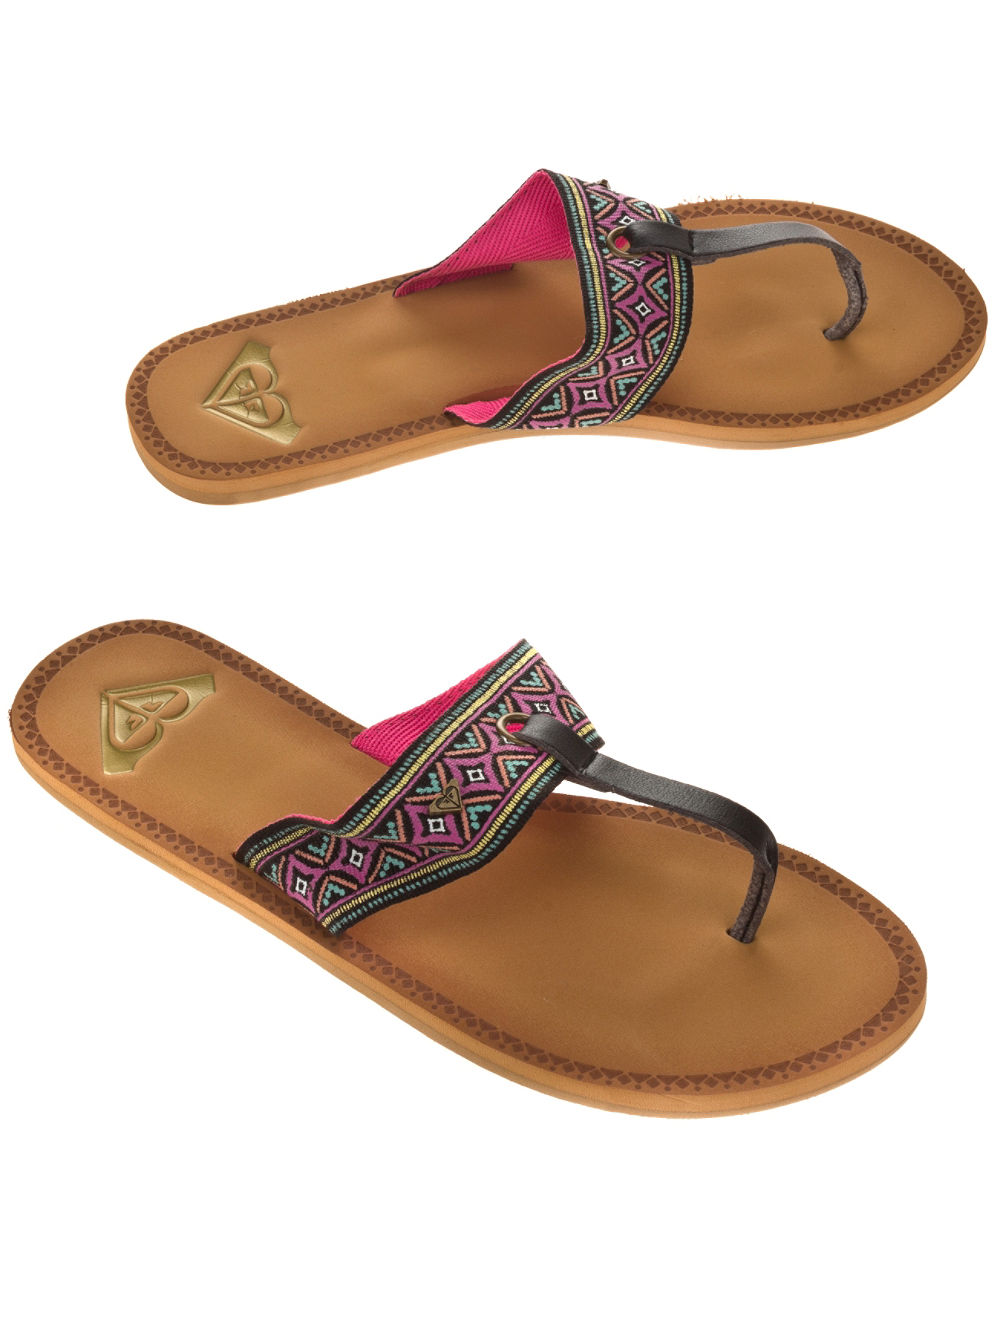 roxy-martinique-sandals-women